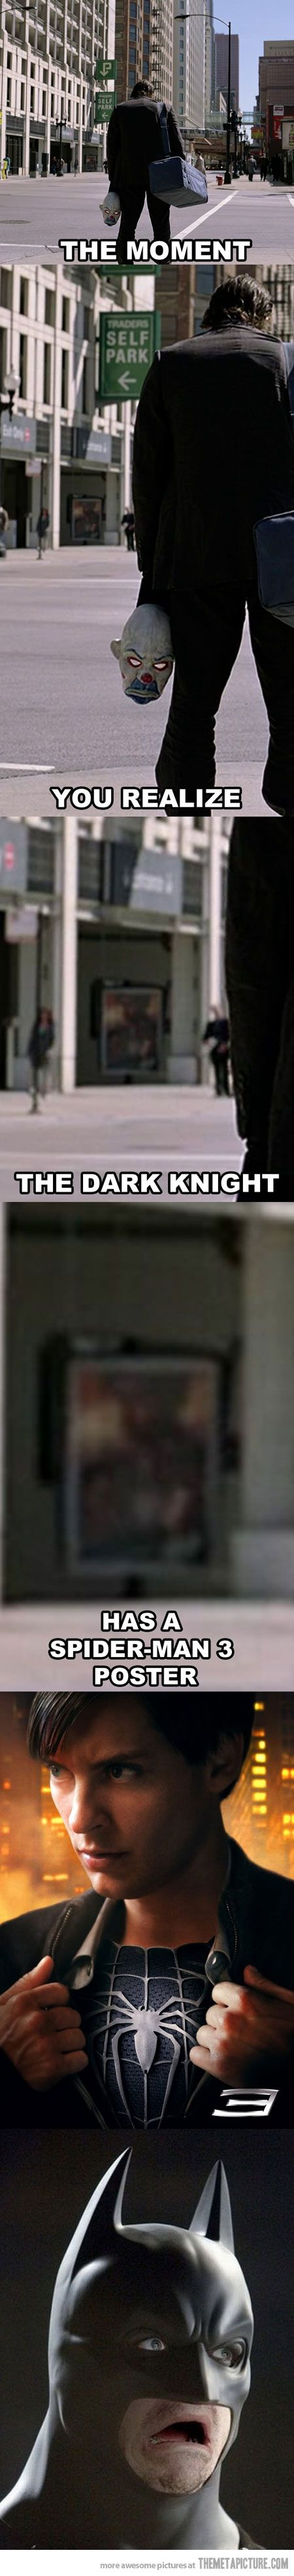 The moment you realize the Dark Knight has a Spiderman 3 poster | Marvel vs DC